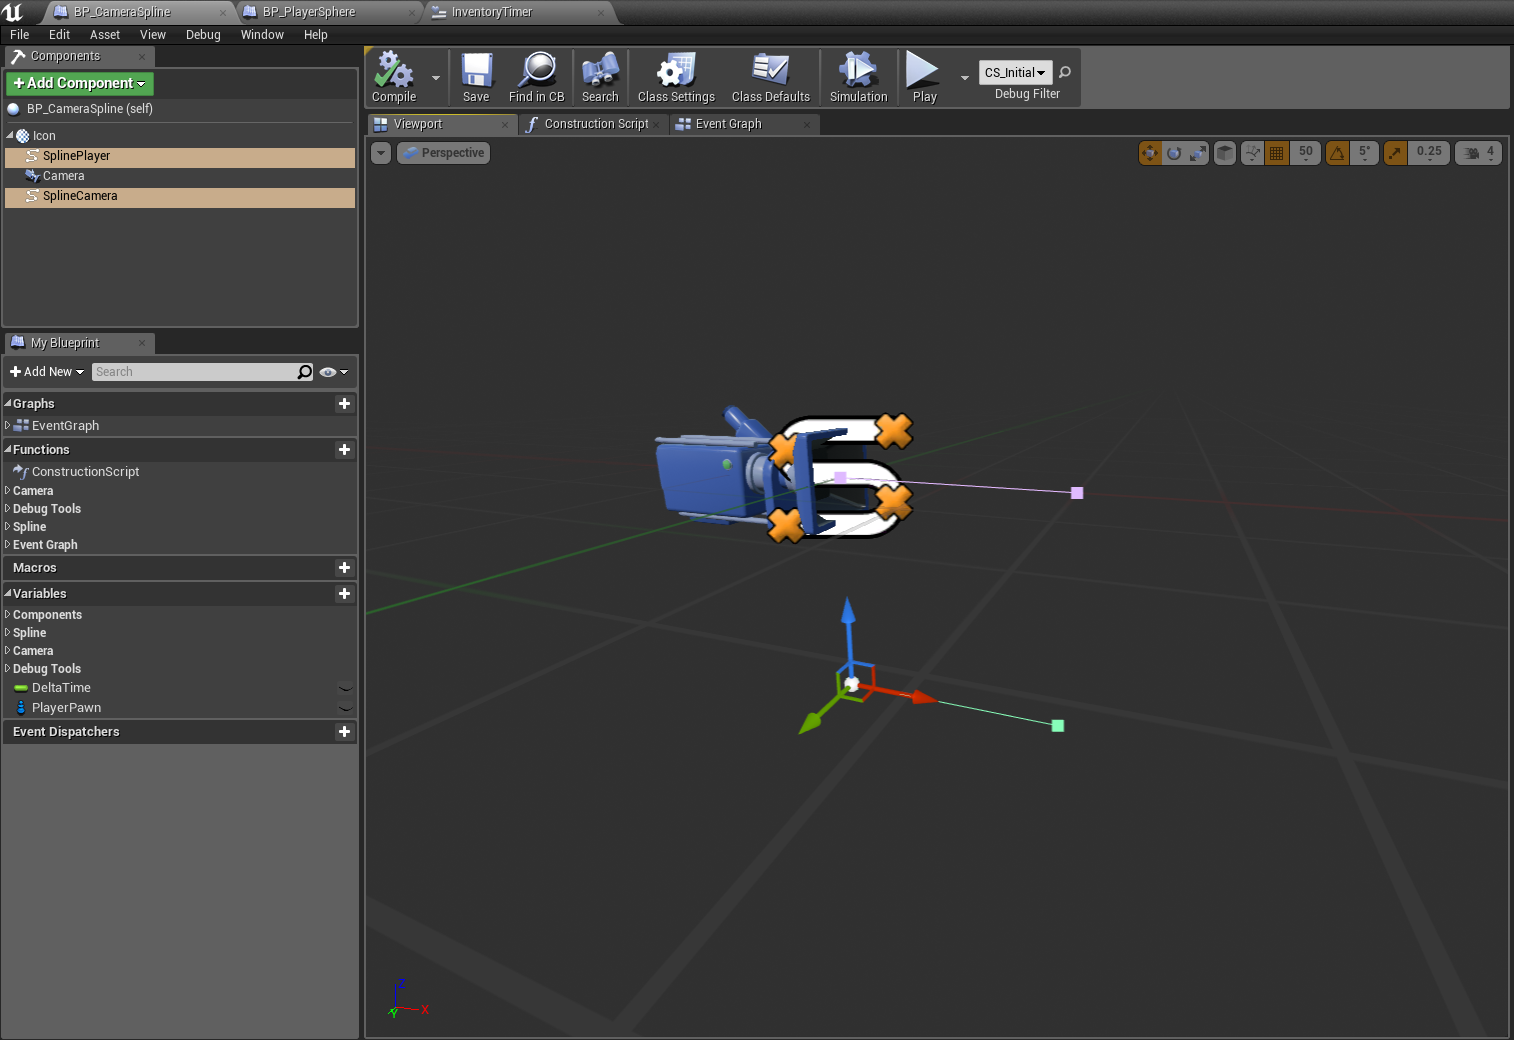 Unreal engine 4 lets make a camera spline system greg mladucky splineactorsetup malvernweather Gallery